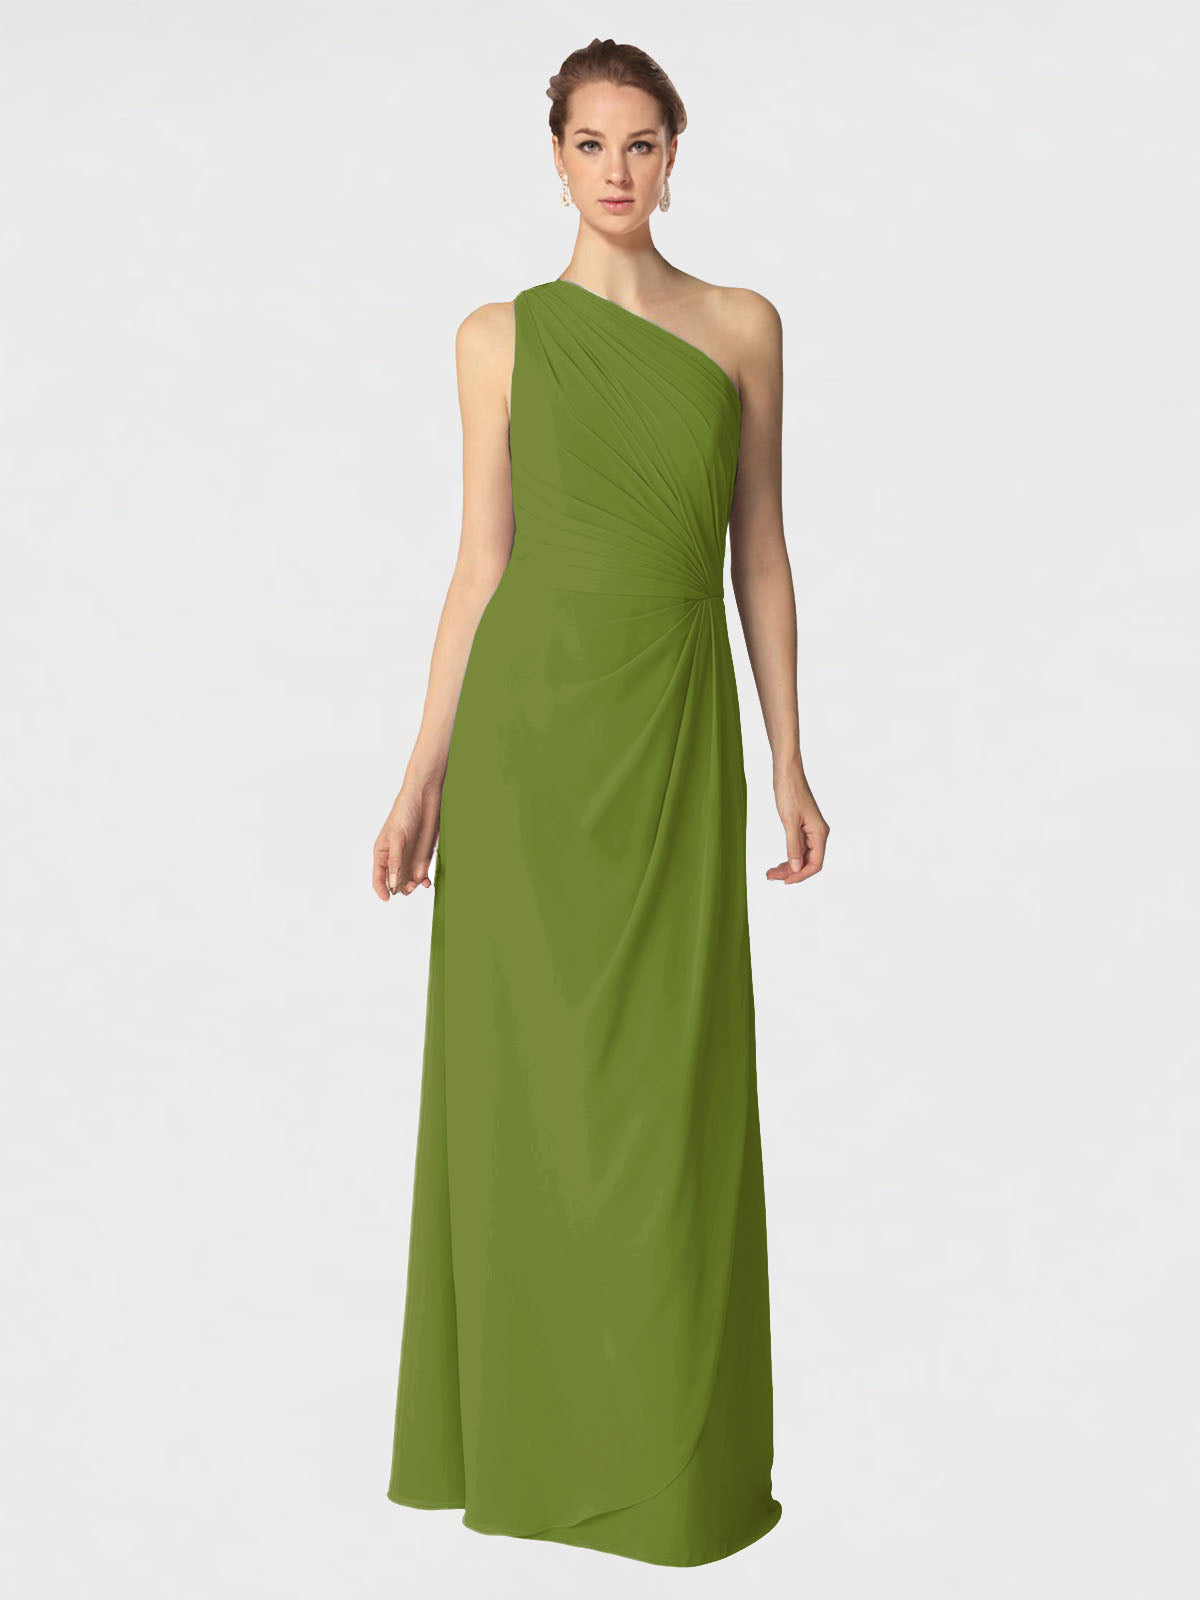 Long A-Line One Shoulder Sleeveless Olive Green Chiffon Bridesmaid Dress Aurora